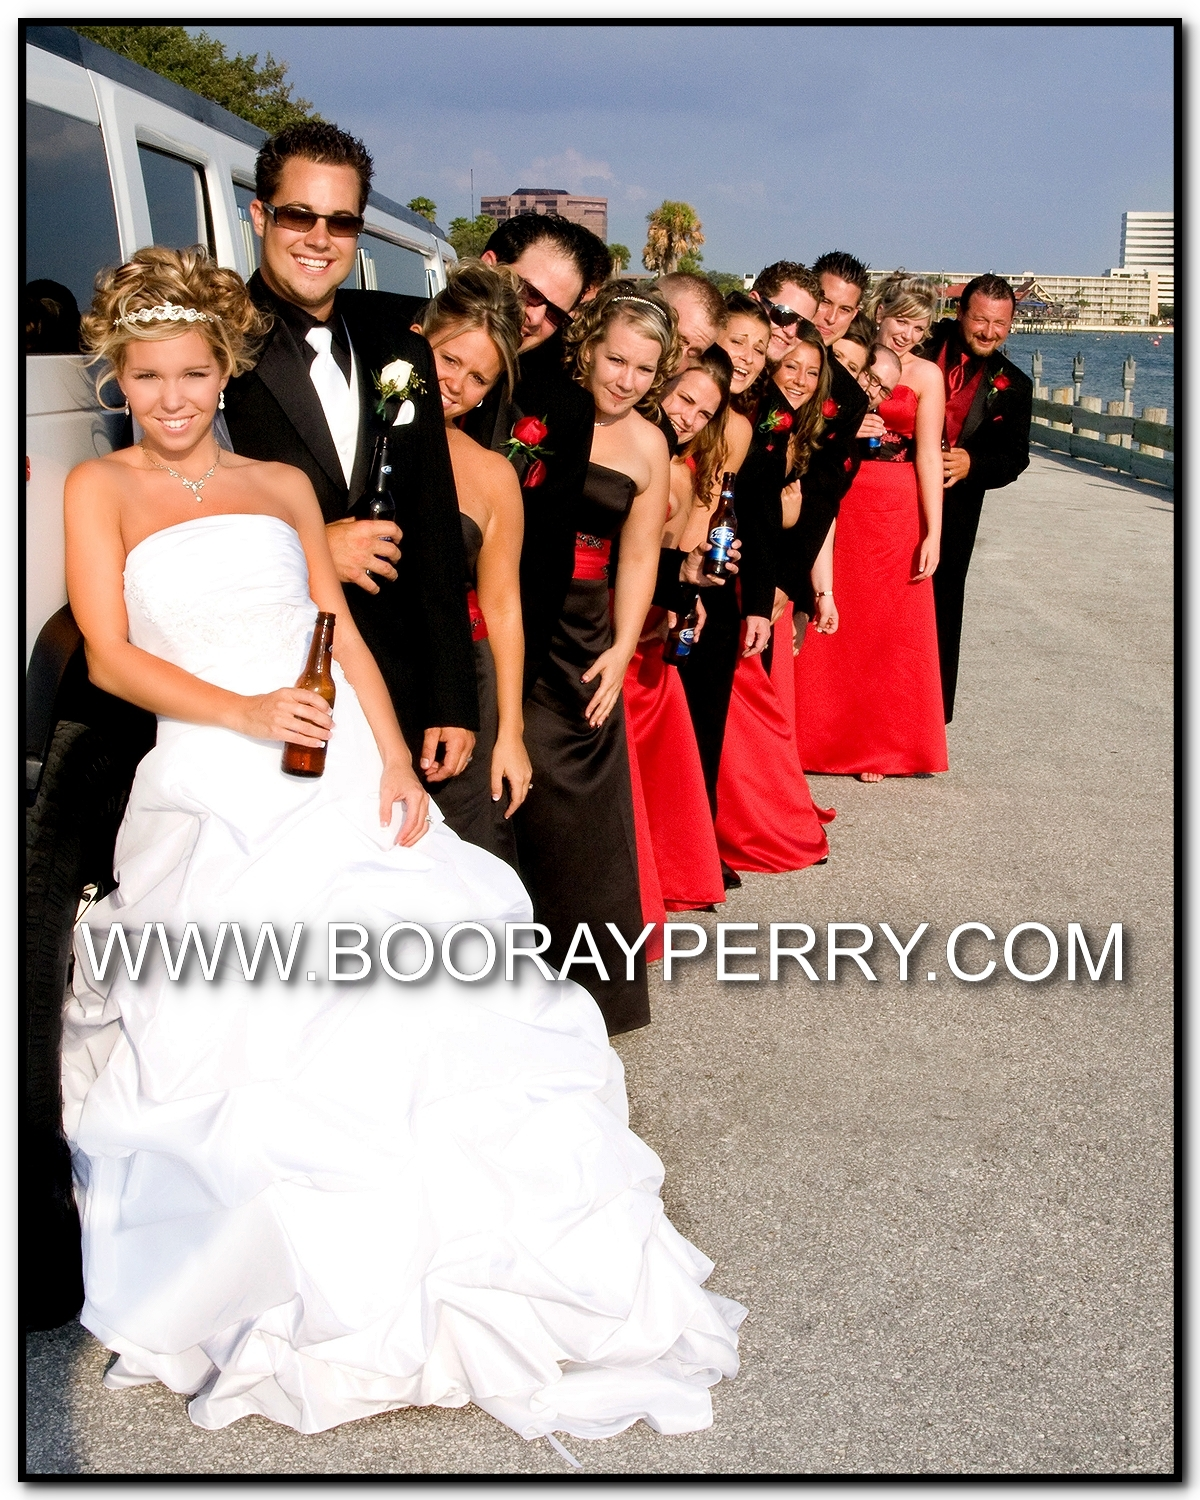 Reception, Flowers & Decor, Wedding Dresses, Beach Wedding Dresses, Fashion, dress, Beach, Beach Wedding Flowers & Decor, Limo, Booray perry photography